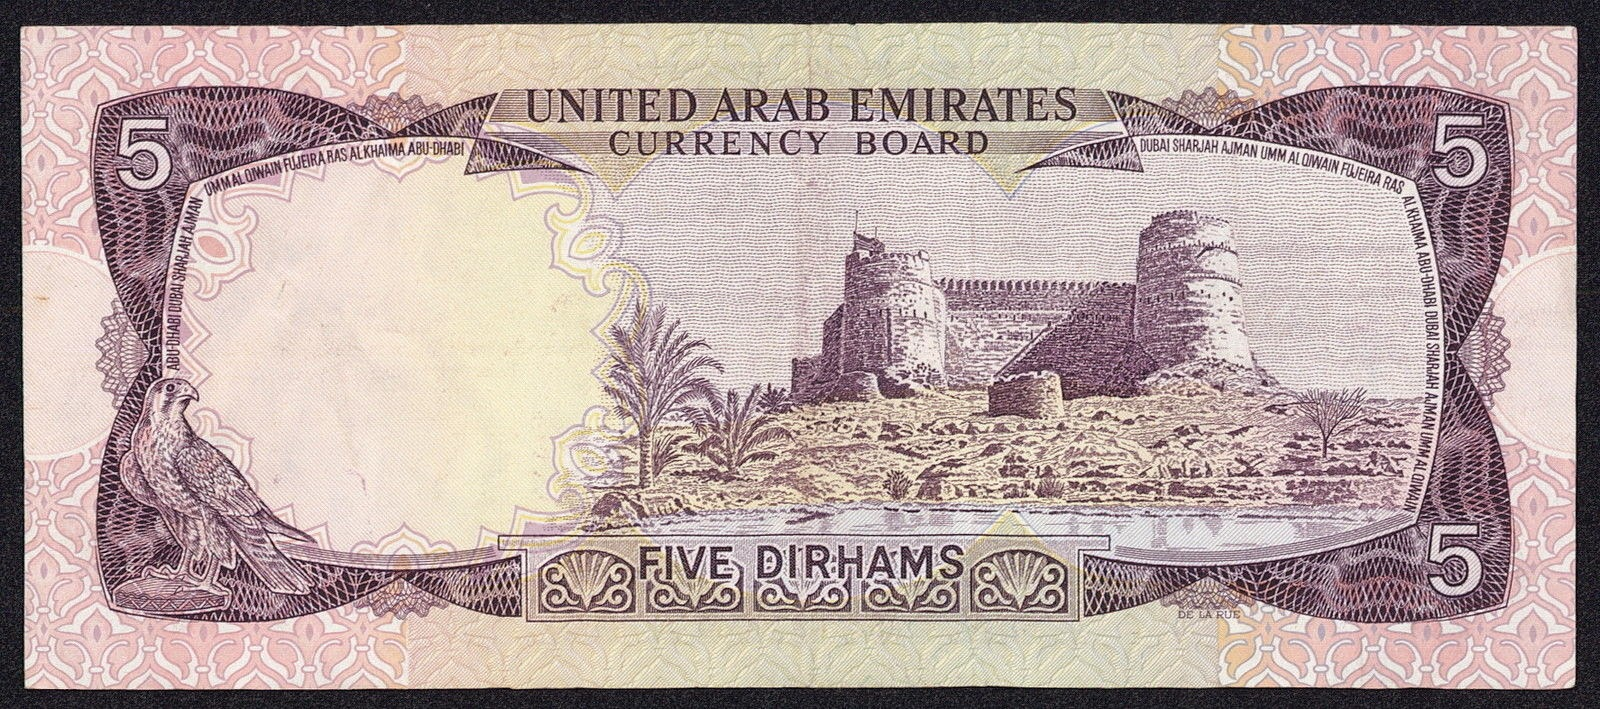 United Arab Emirates / UAE - 1 Dirham 1989 Coin UNC ... |Arab Emirates Currency